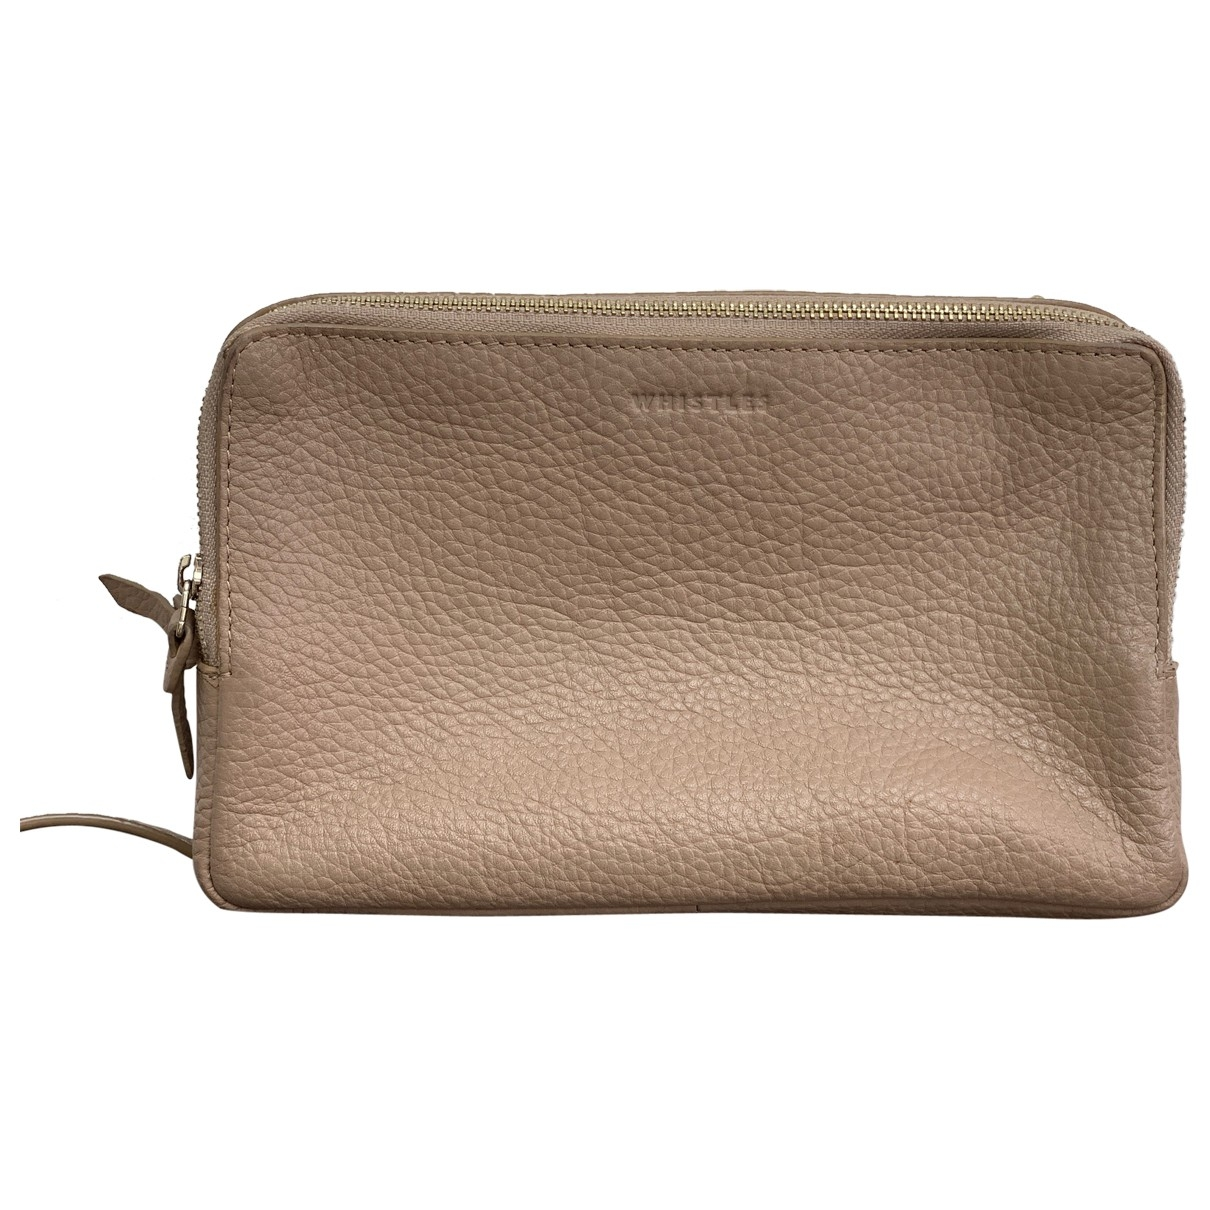 Whistles \N Beige Leather handbag for Women \N